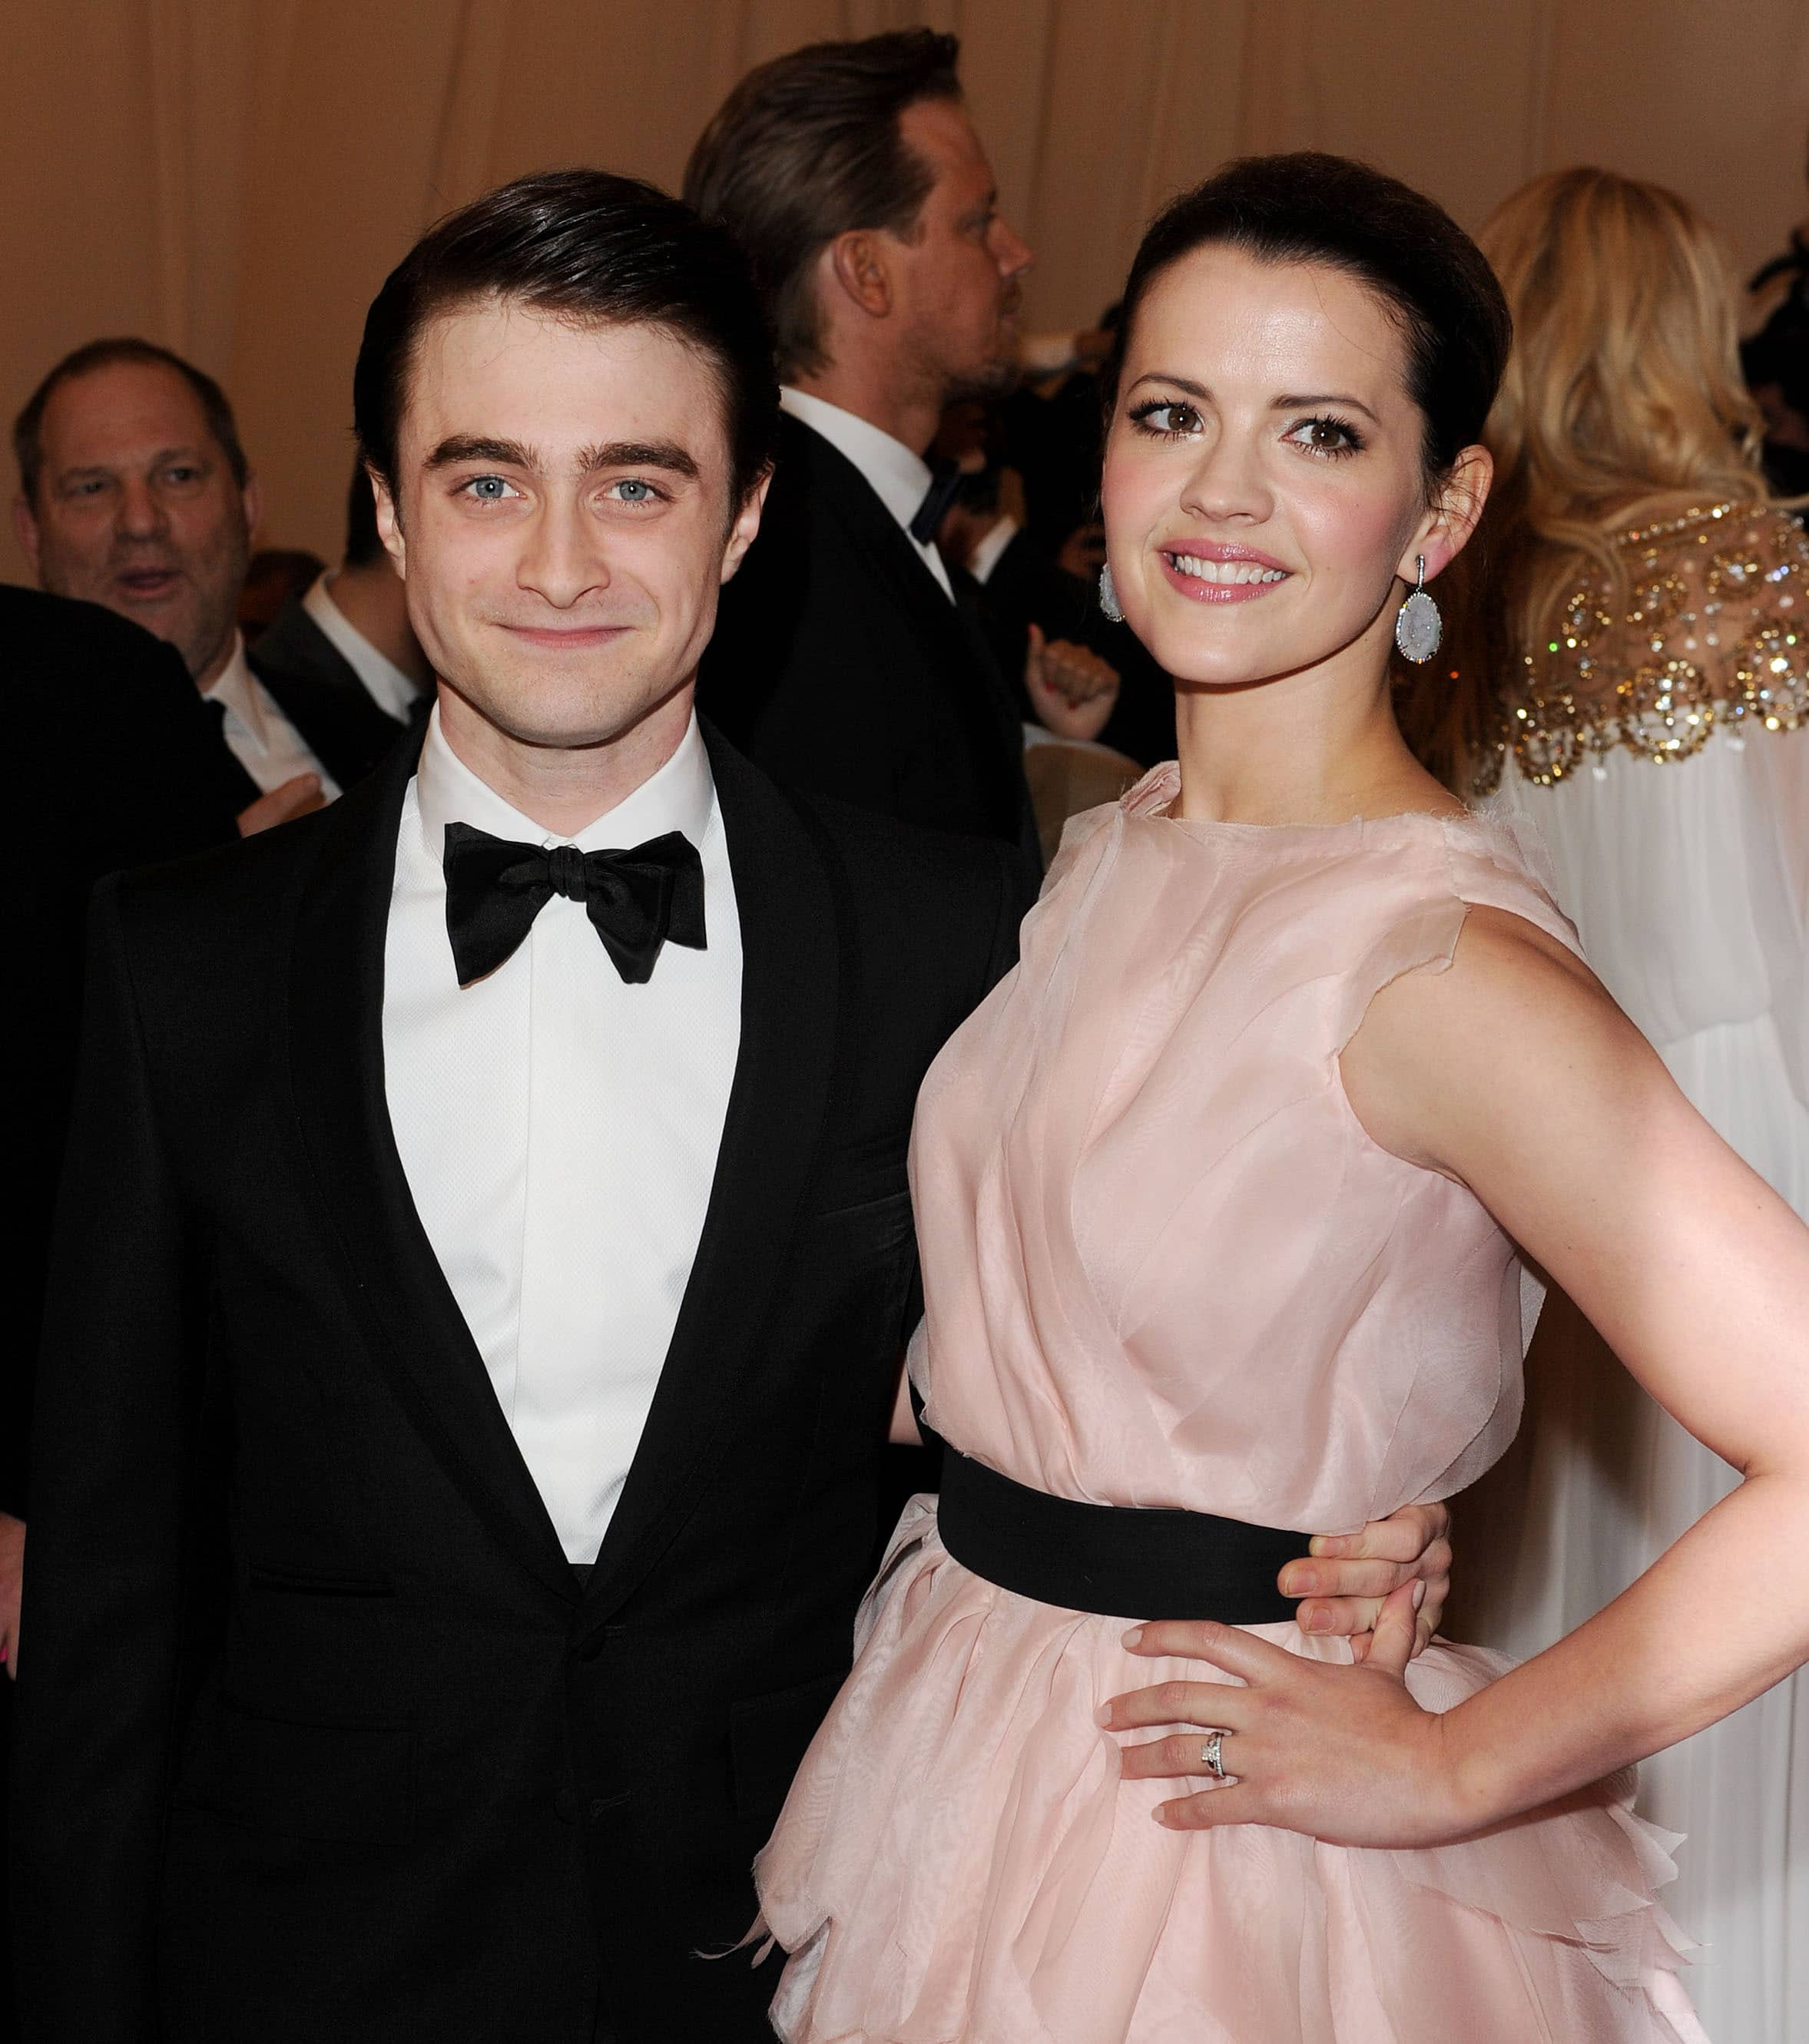 Has daniel dated who radcliffe Who is